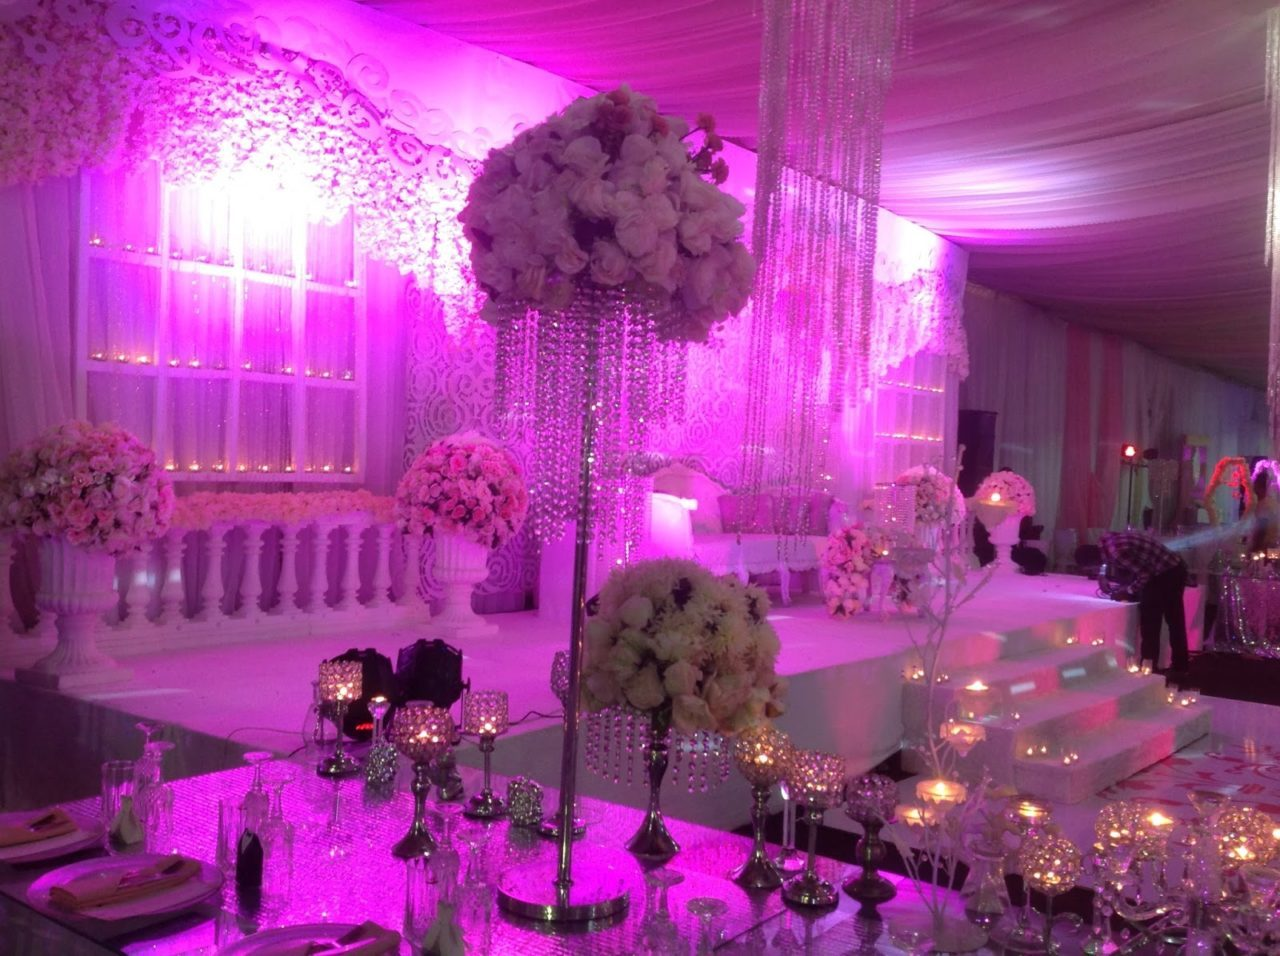 Bespoke wedding decorations for the nigerian at heart pink wedding theme photo credit pinterest junglespirit Images